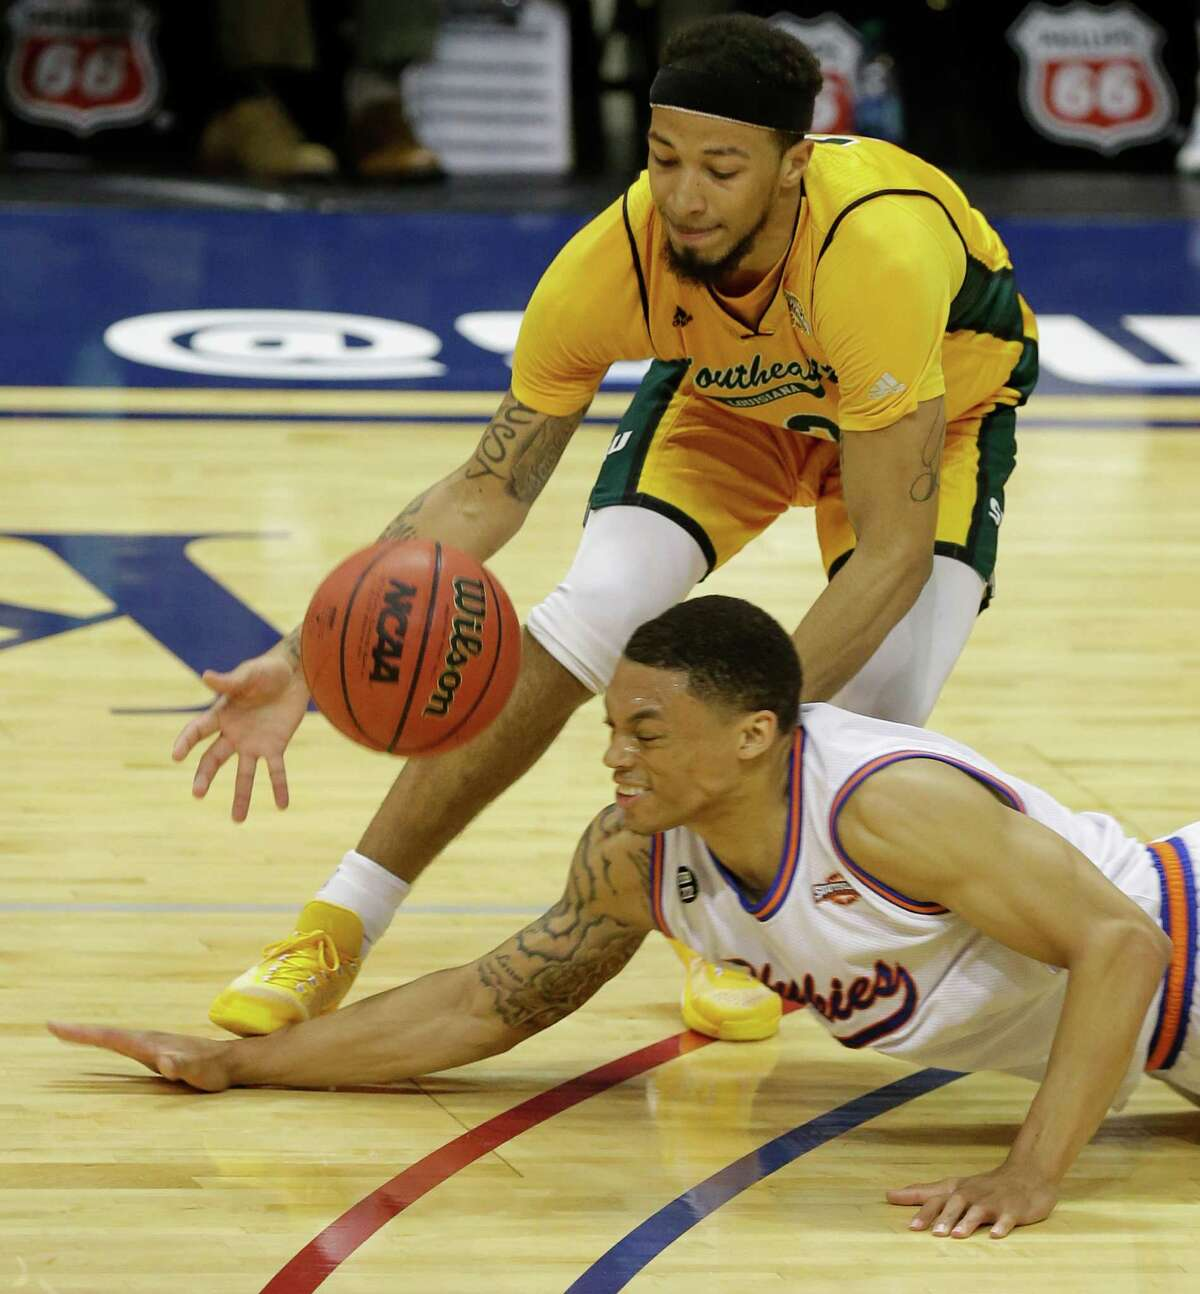 Southeastern Louisiana Dimi Cook and Houston Baptist Caleb Crayton scramble for the ball during the second of game at the Southland conference tournament Thursday, March 10, 2016, in Katy.